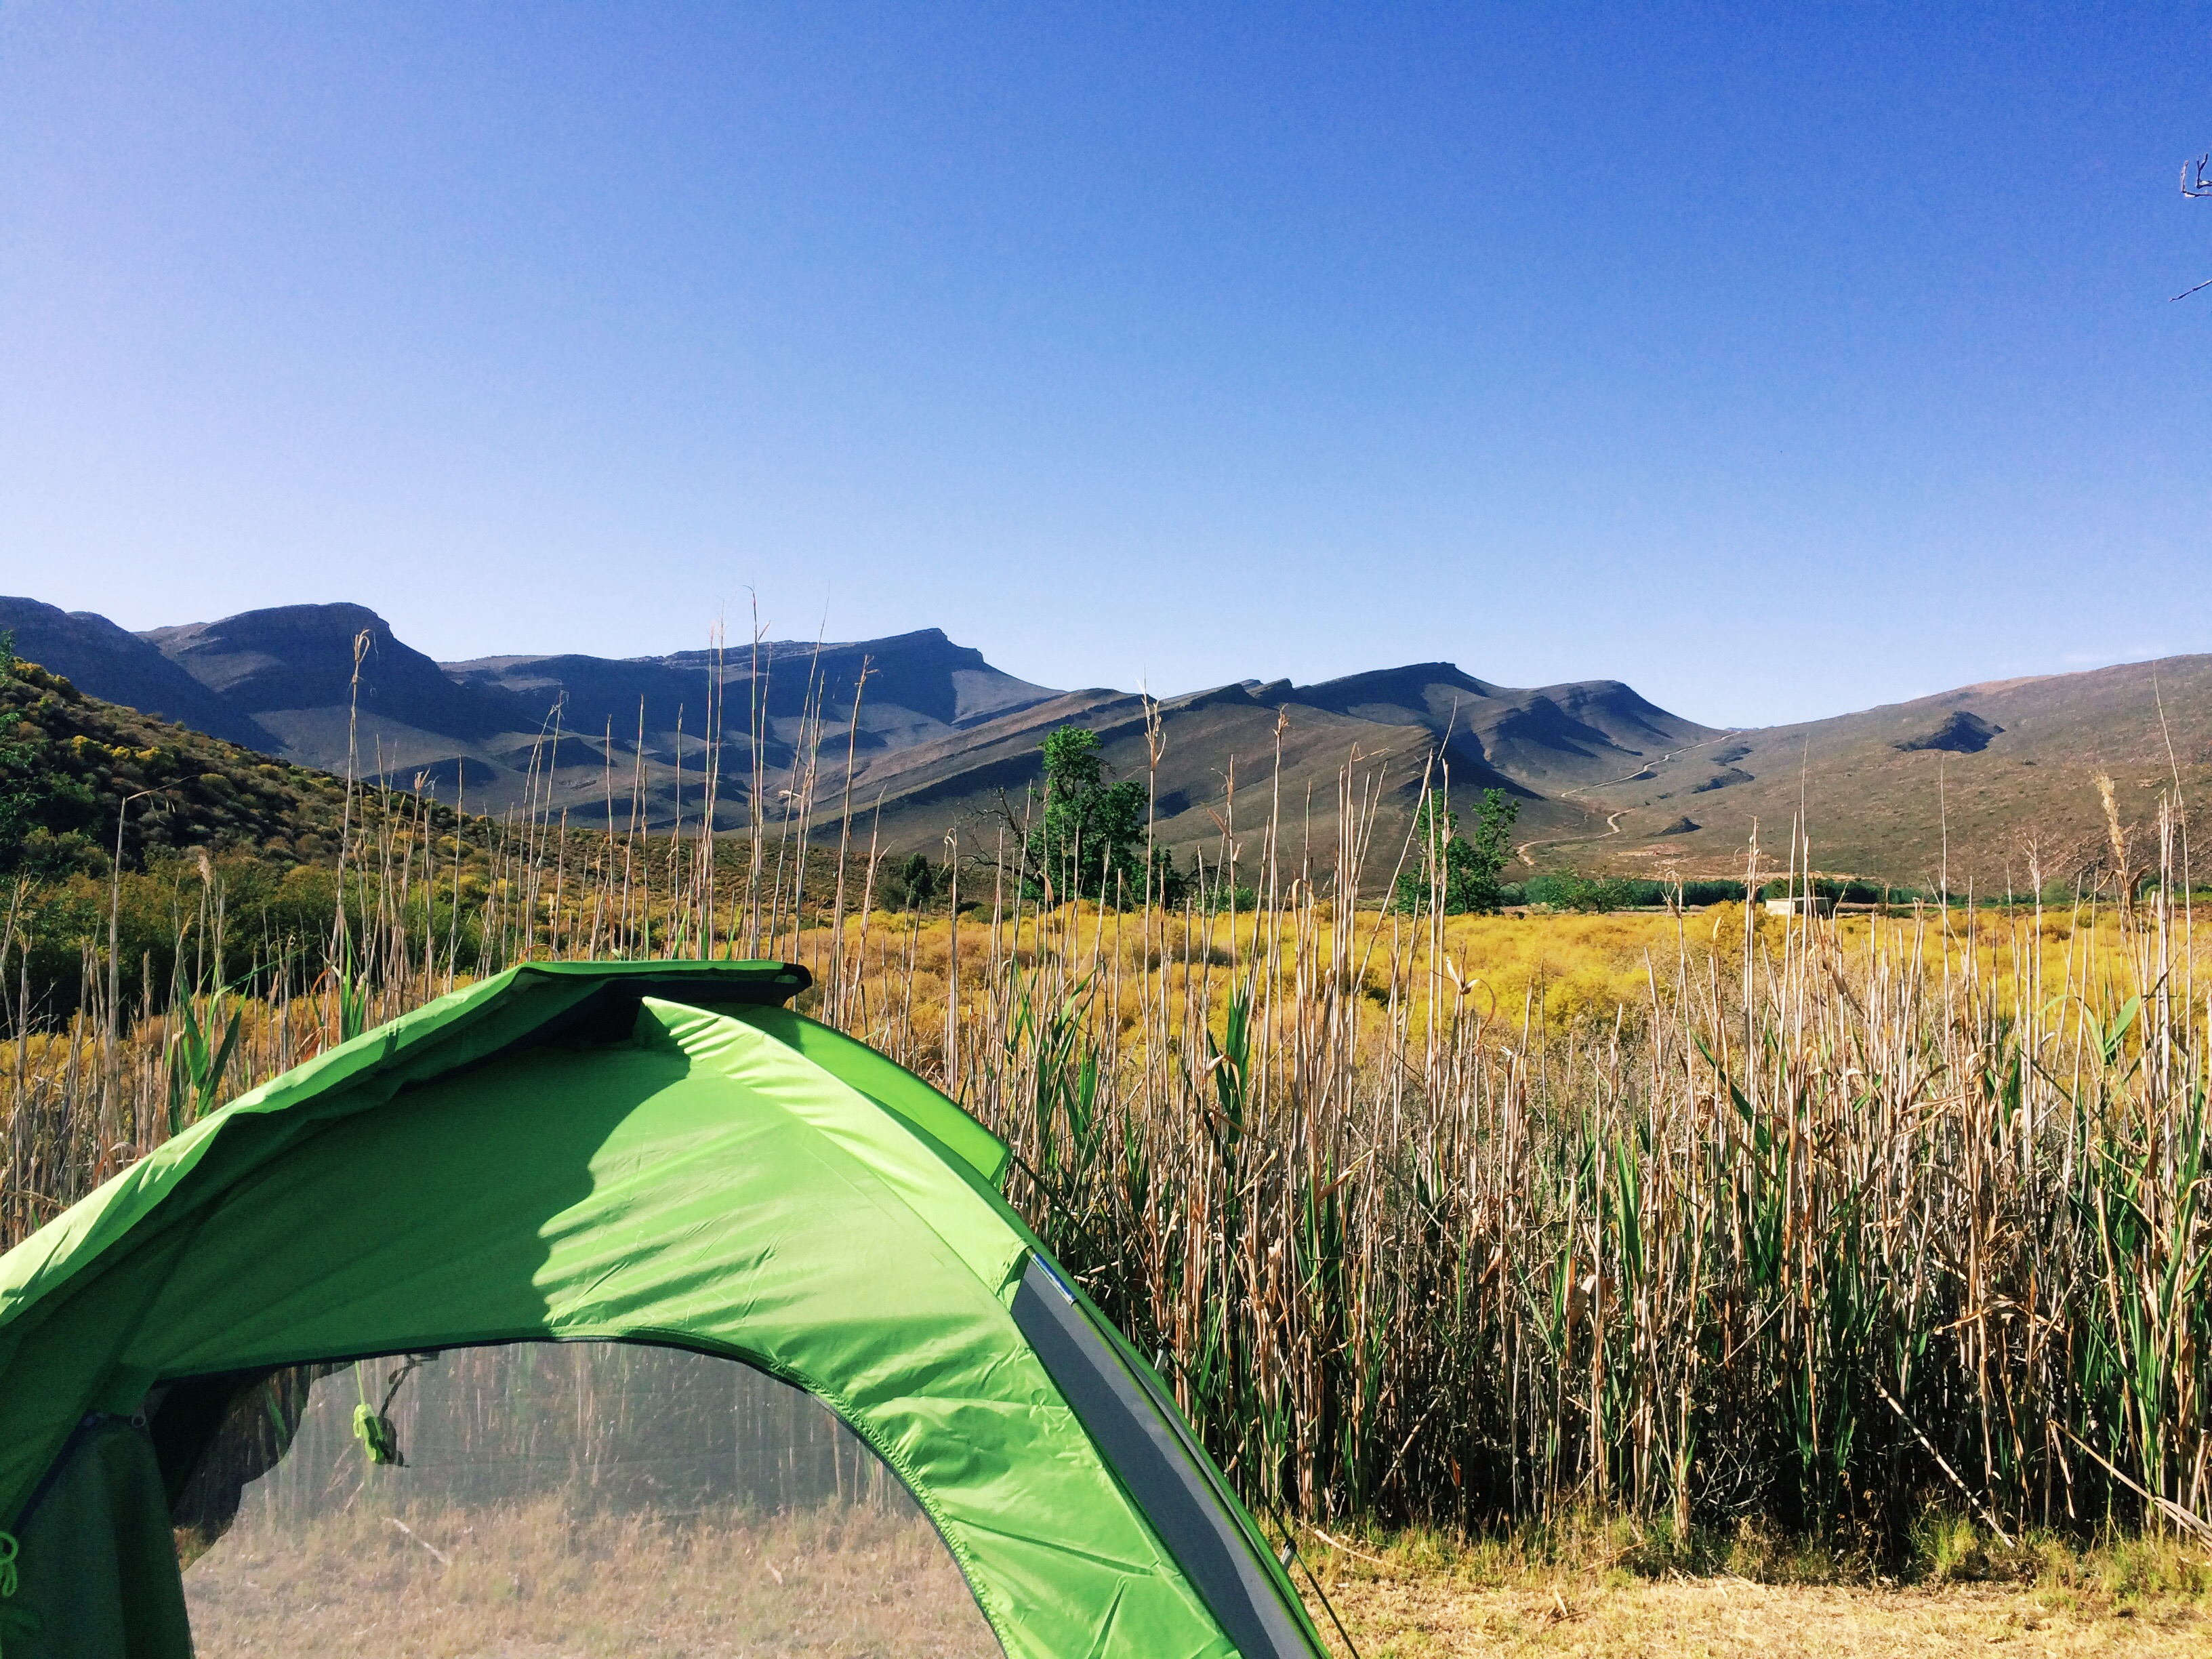 A room with a view: My tent overlooking the Cederberg mountains - Cederberg Oasis